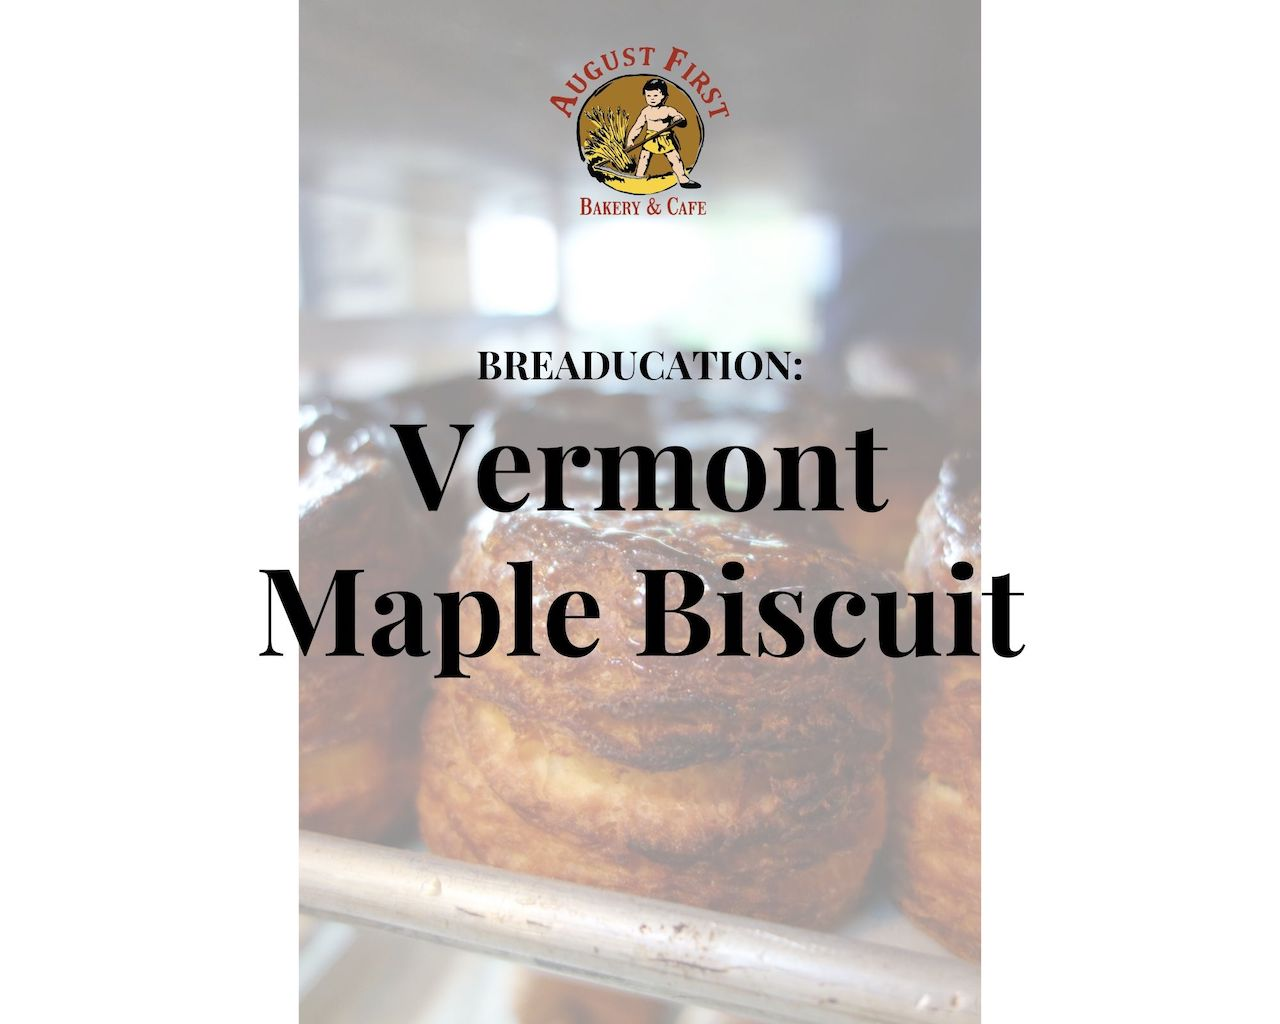 Vermont Maple Biscuit